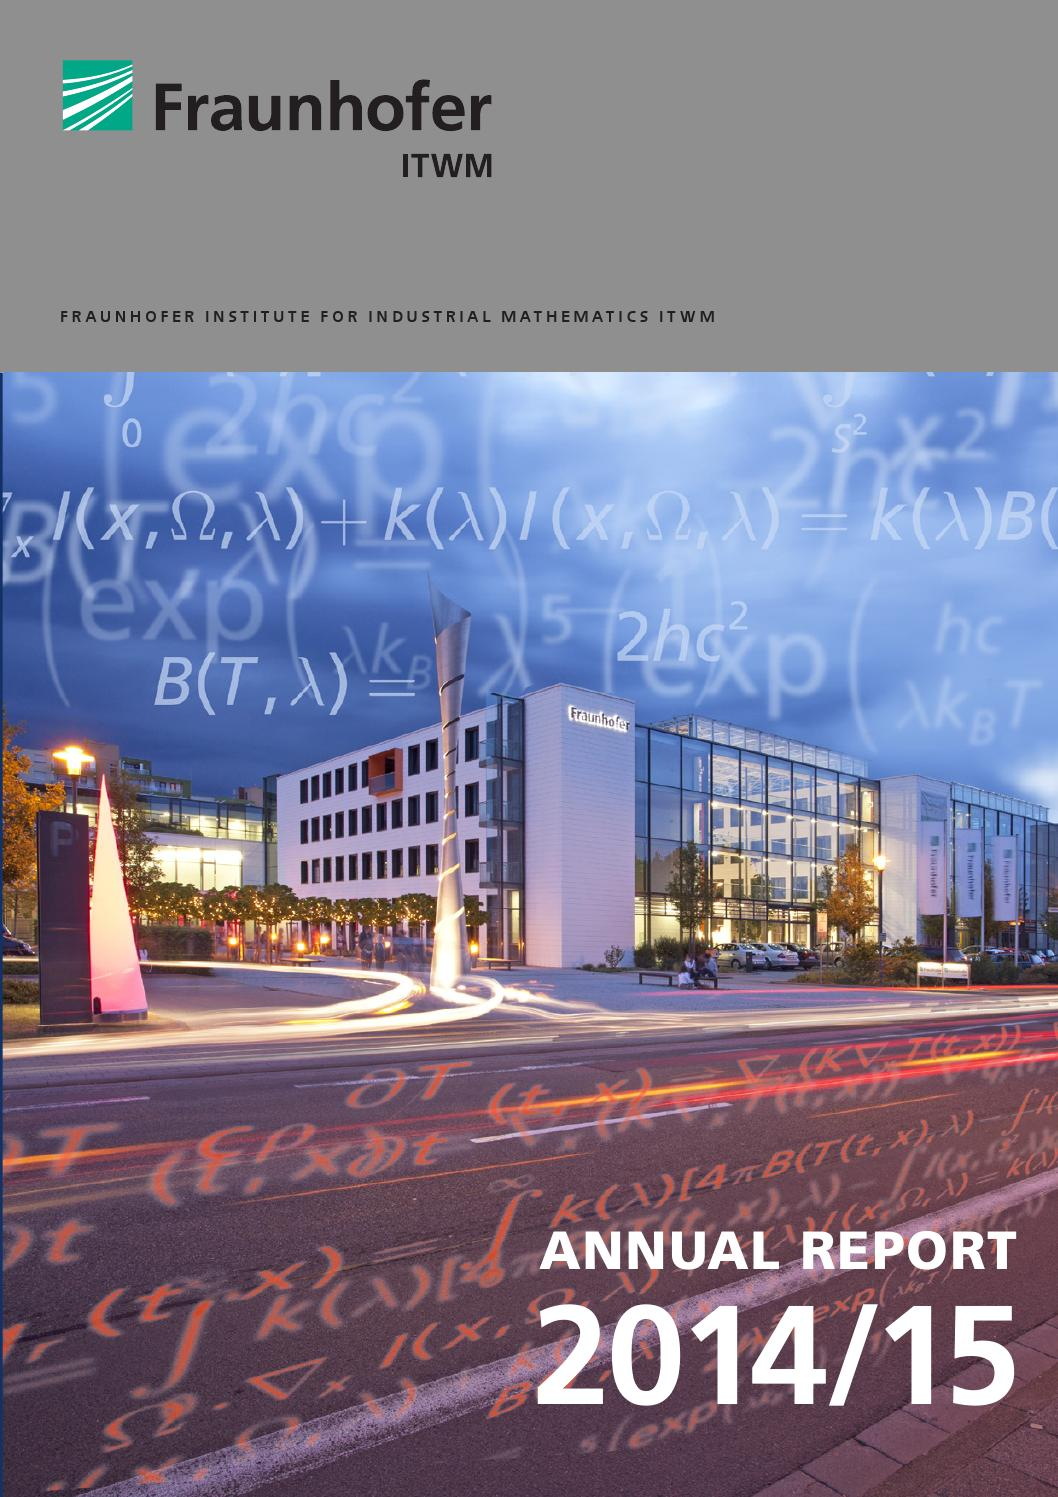 Annual Report 2014 by Fraunhofer ITWM